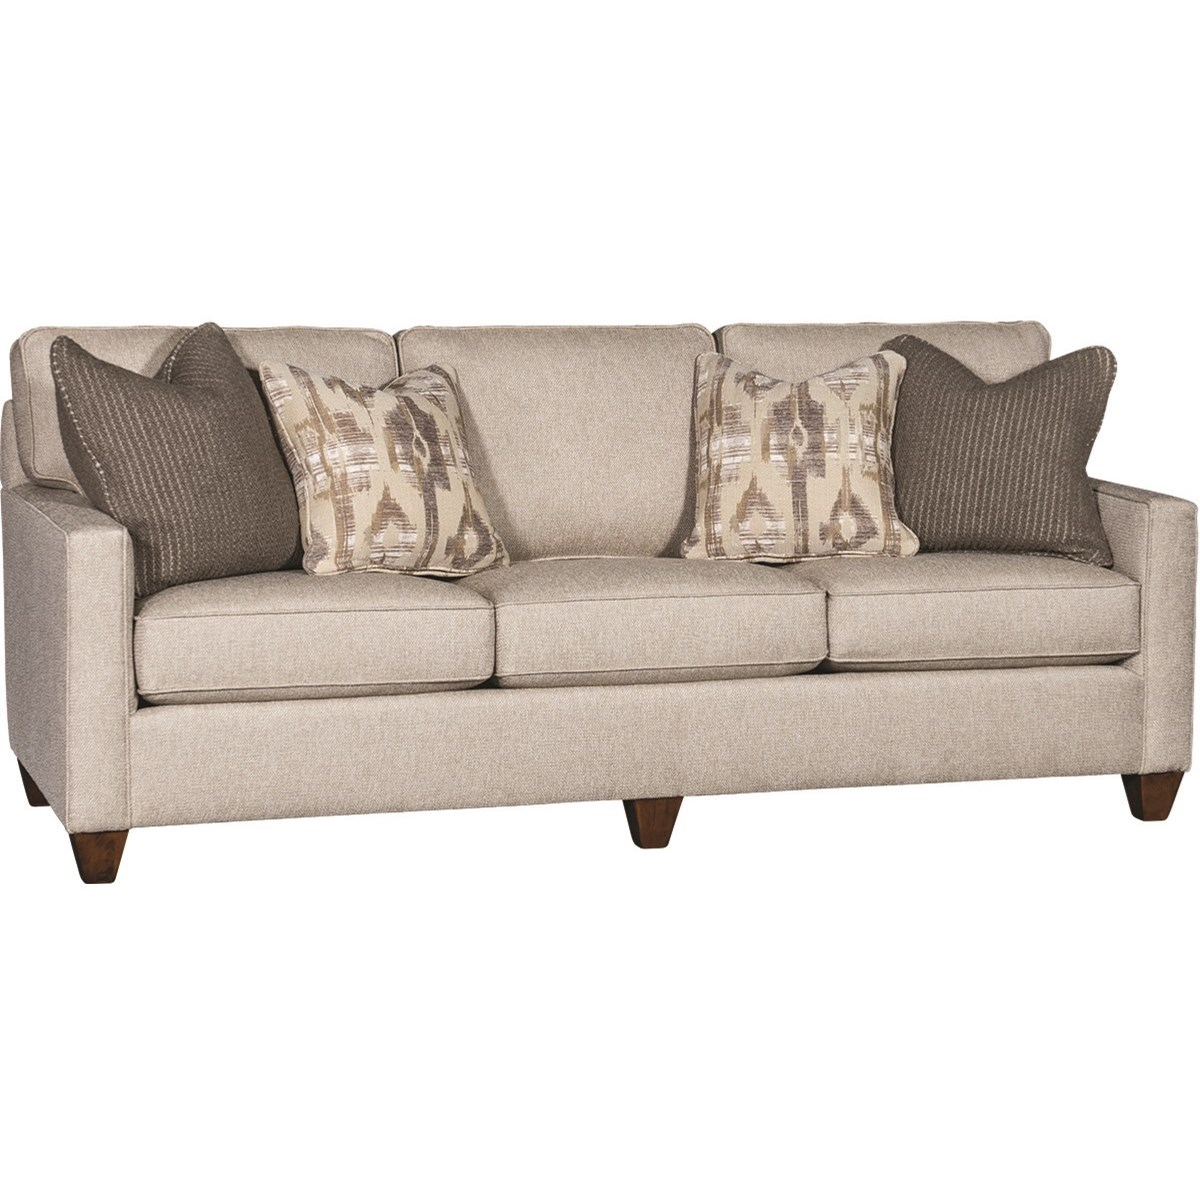 3830 Sofa by Mayo at Pedigo Furniture